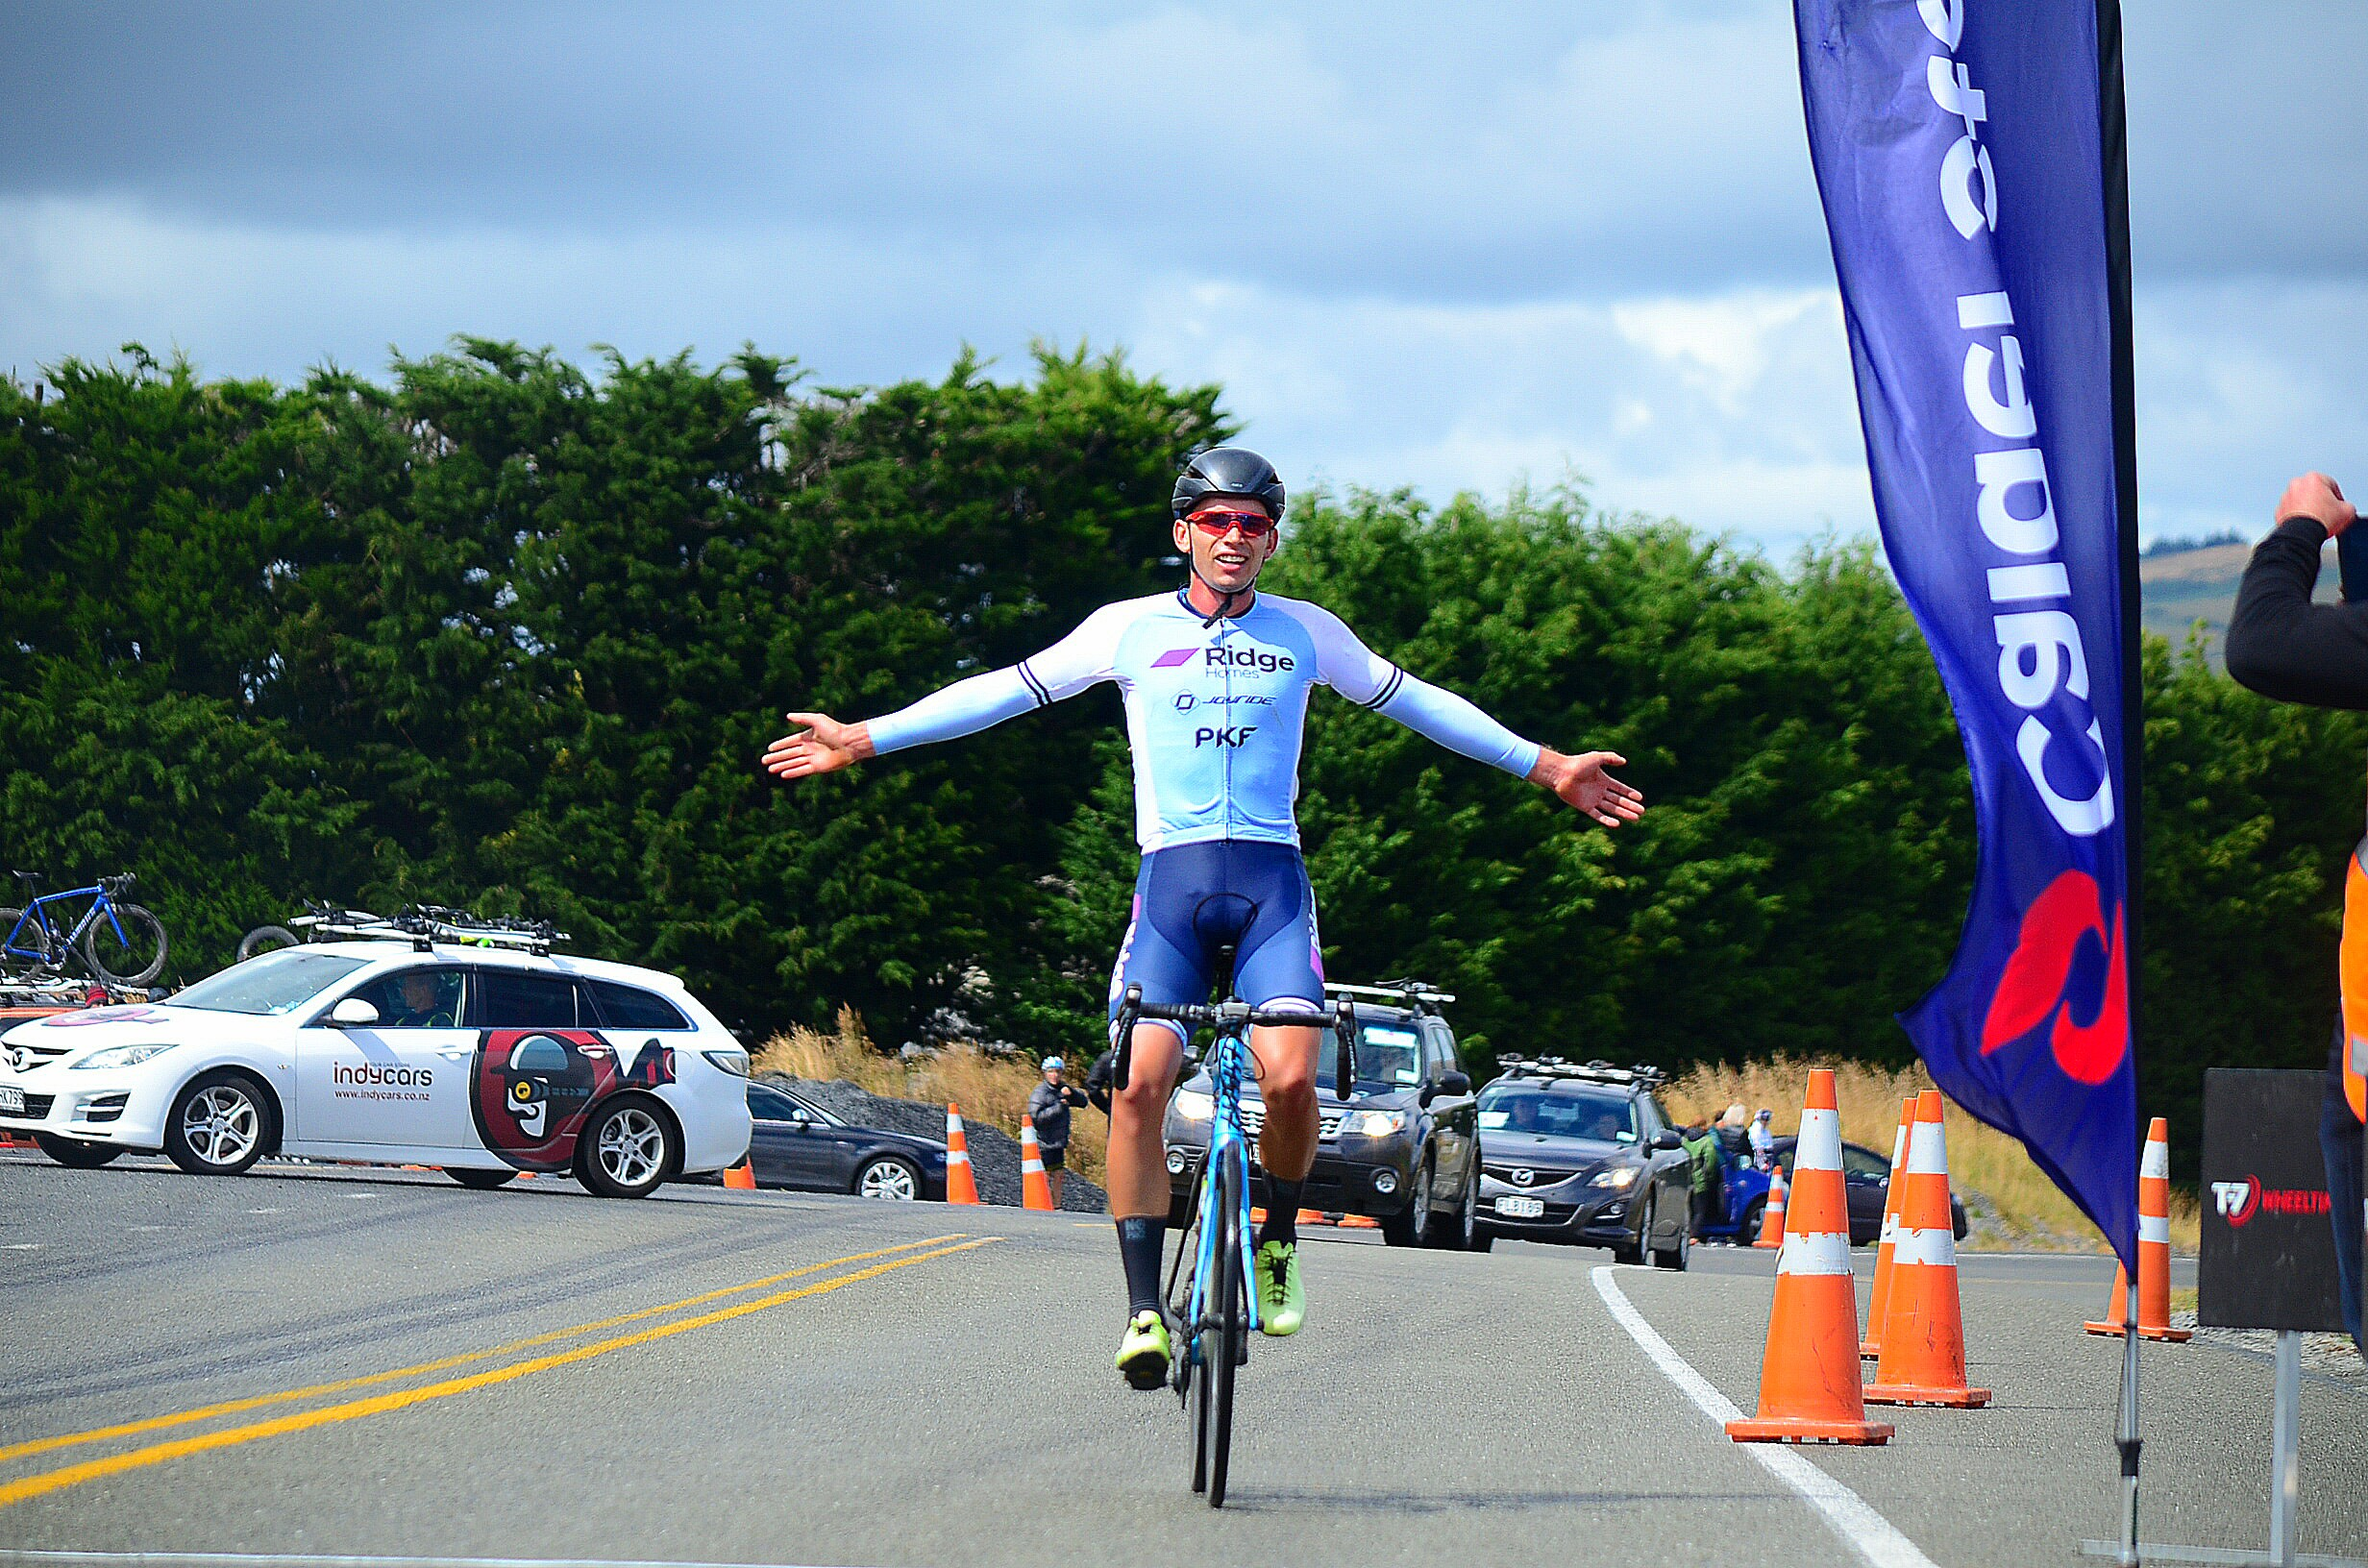 Photo:  Nelson cyclist climb Ethan Batt had an impressive climb to claim his first win in the Calder Stewart Cycling Series the Mid Way Motors Dunedin Classic. Pic: Rachel Harris